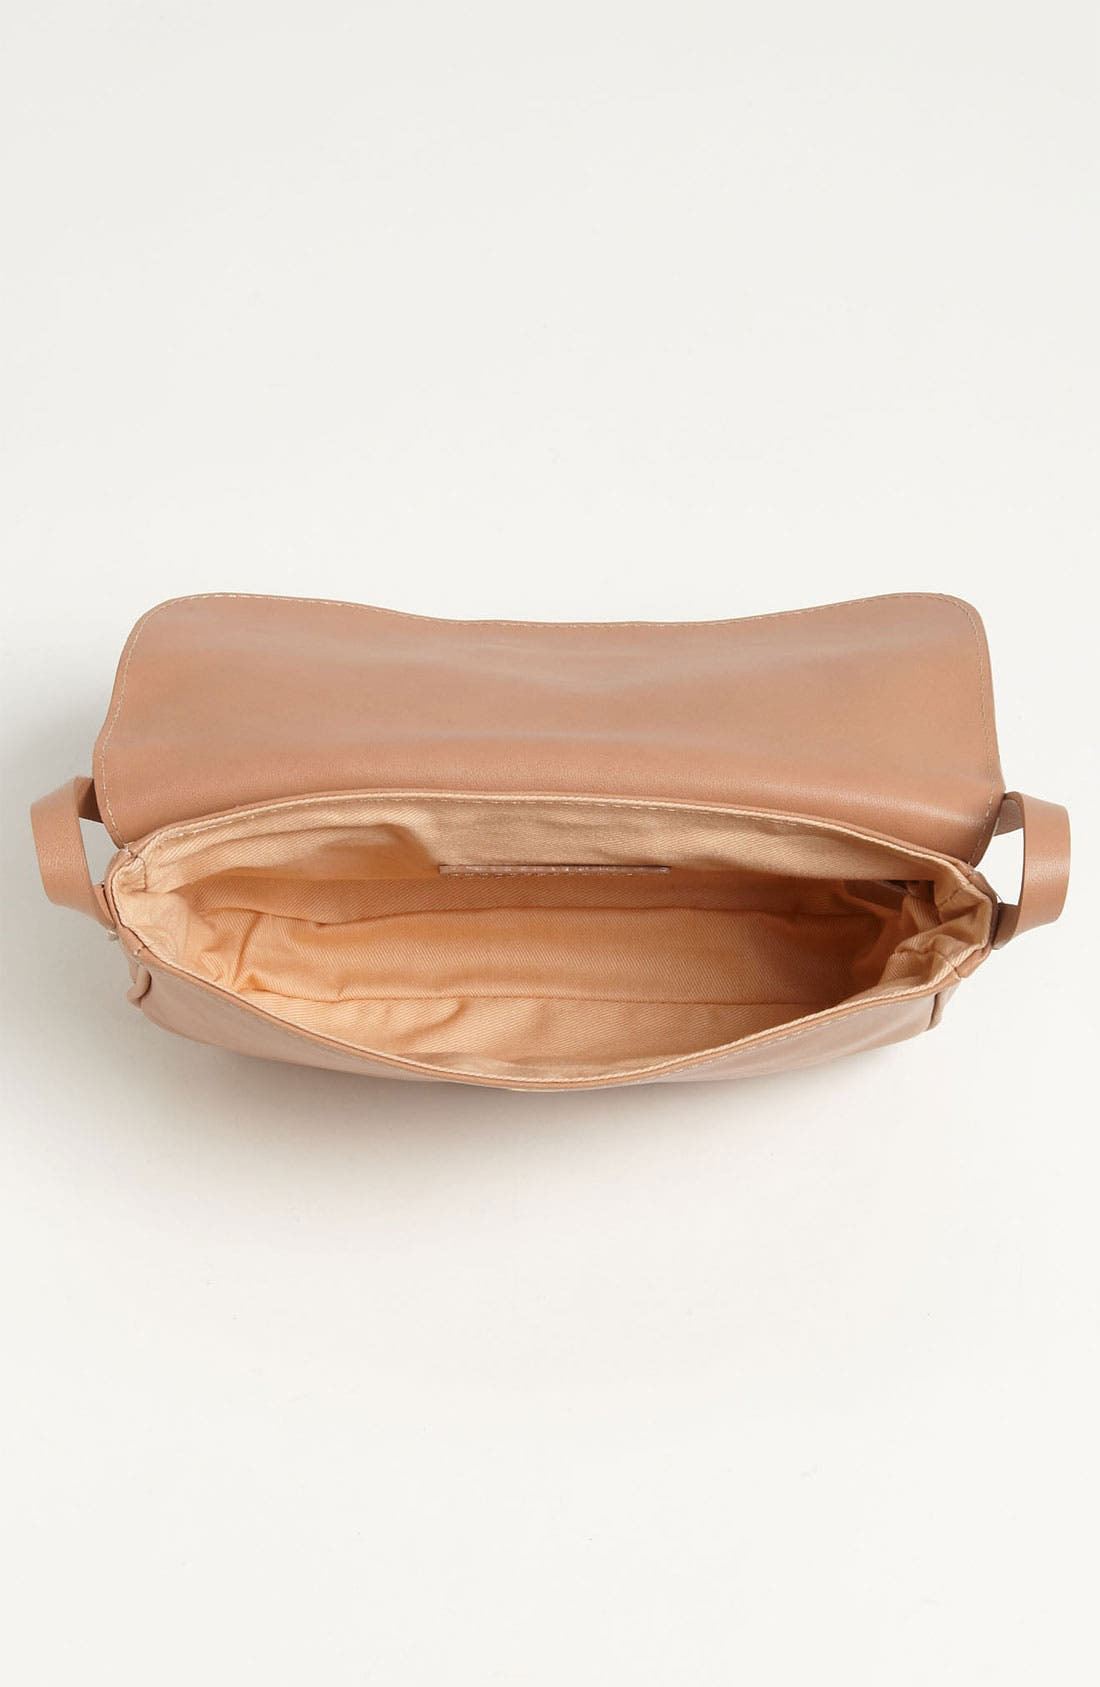 Alternate Image 3  - See by Chloé 'Maani' Leather Crossbody Bag